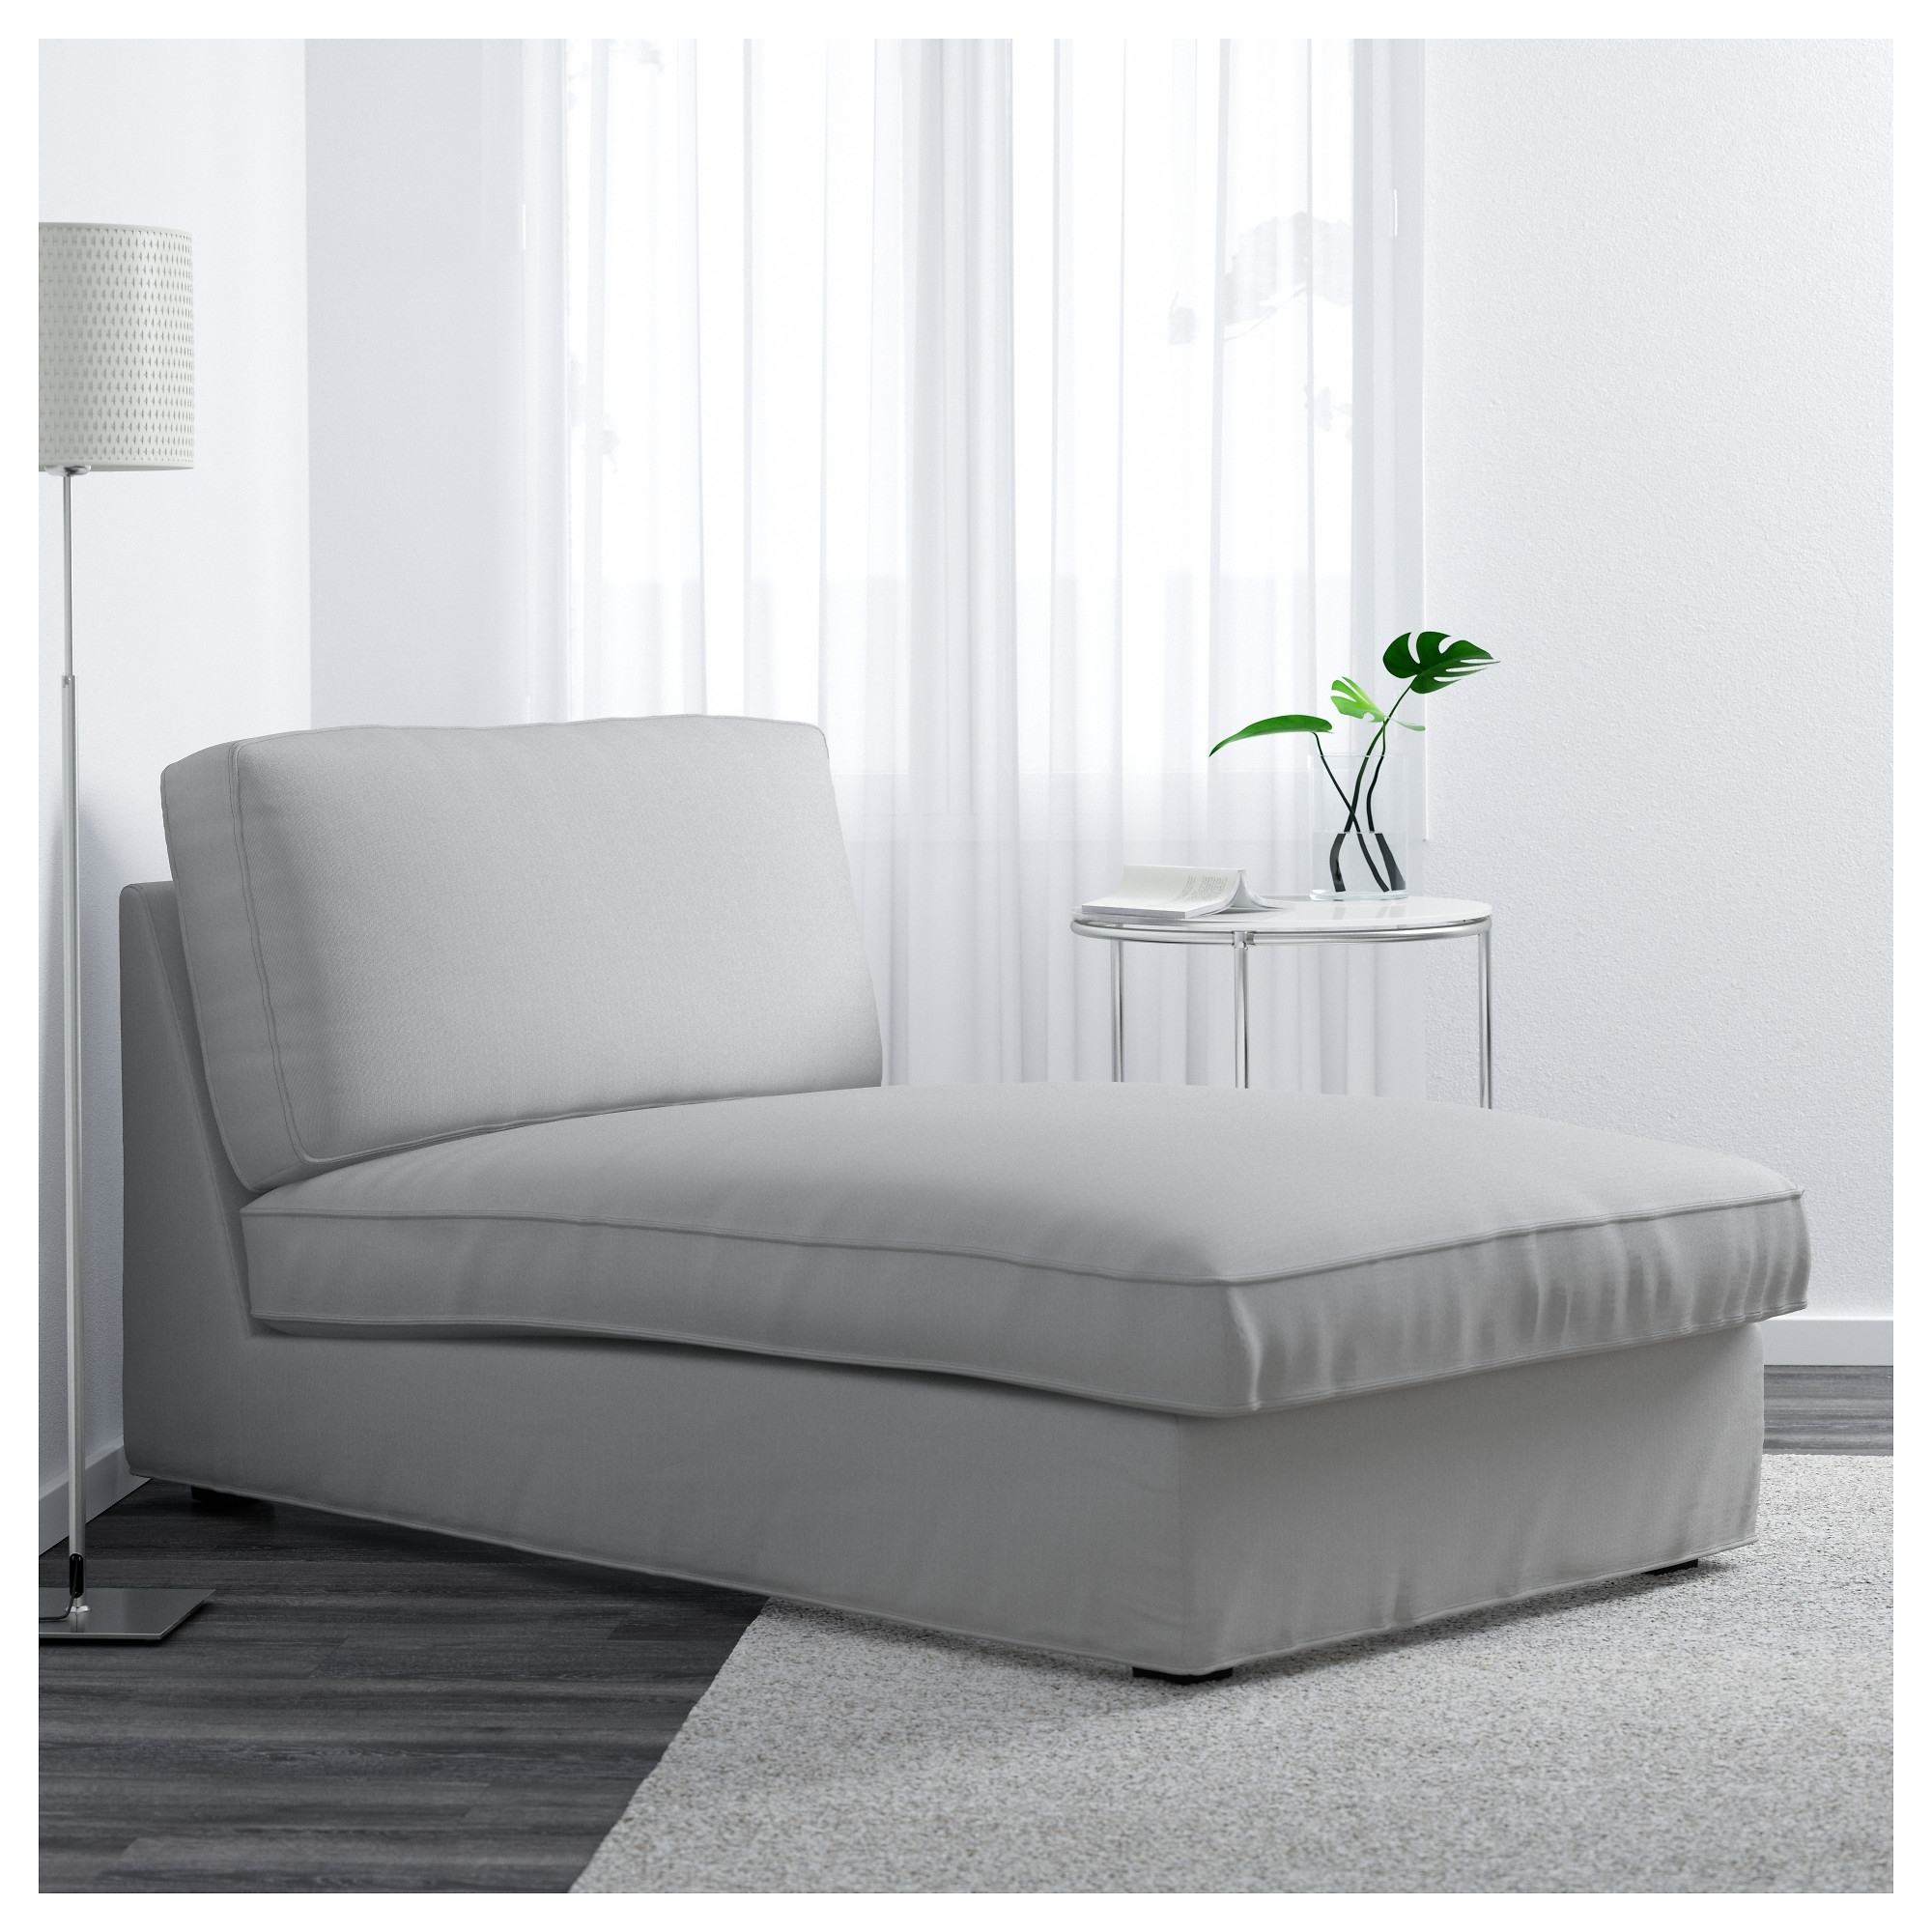 Newest Kivik Chaise Longue Ramna Light Grey – Ikea Intended For Kivik Chaises (View 13 of 15)